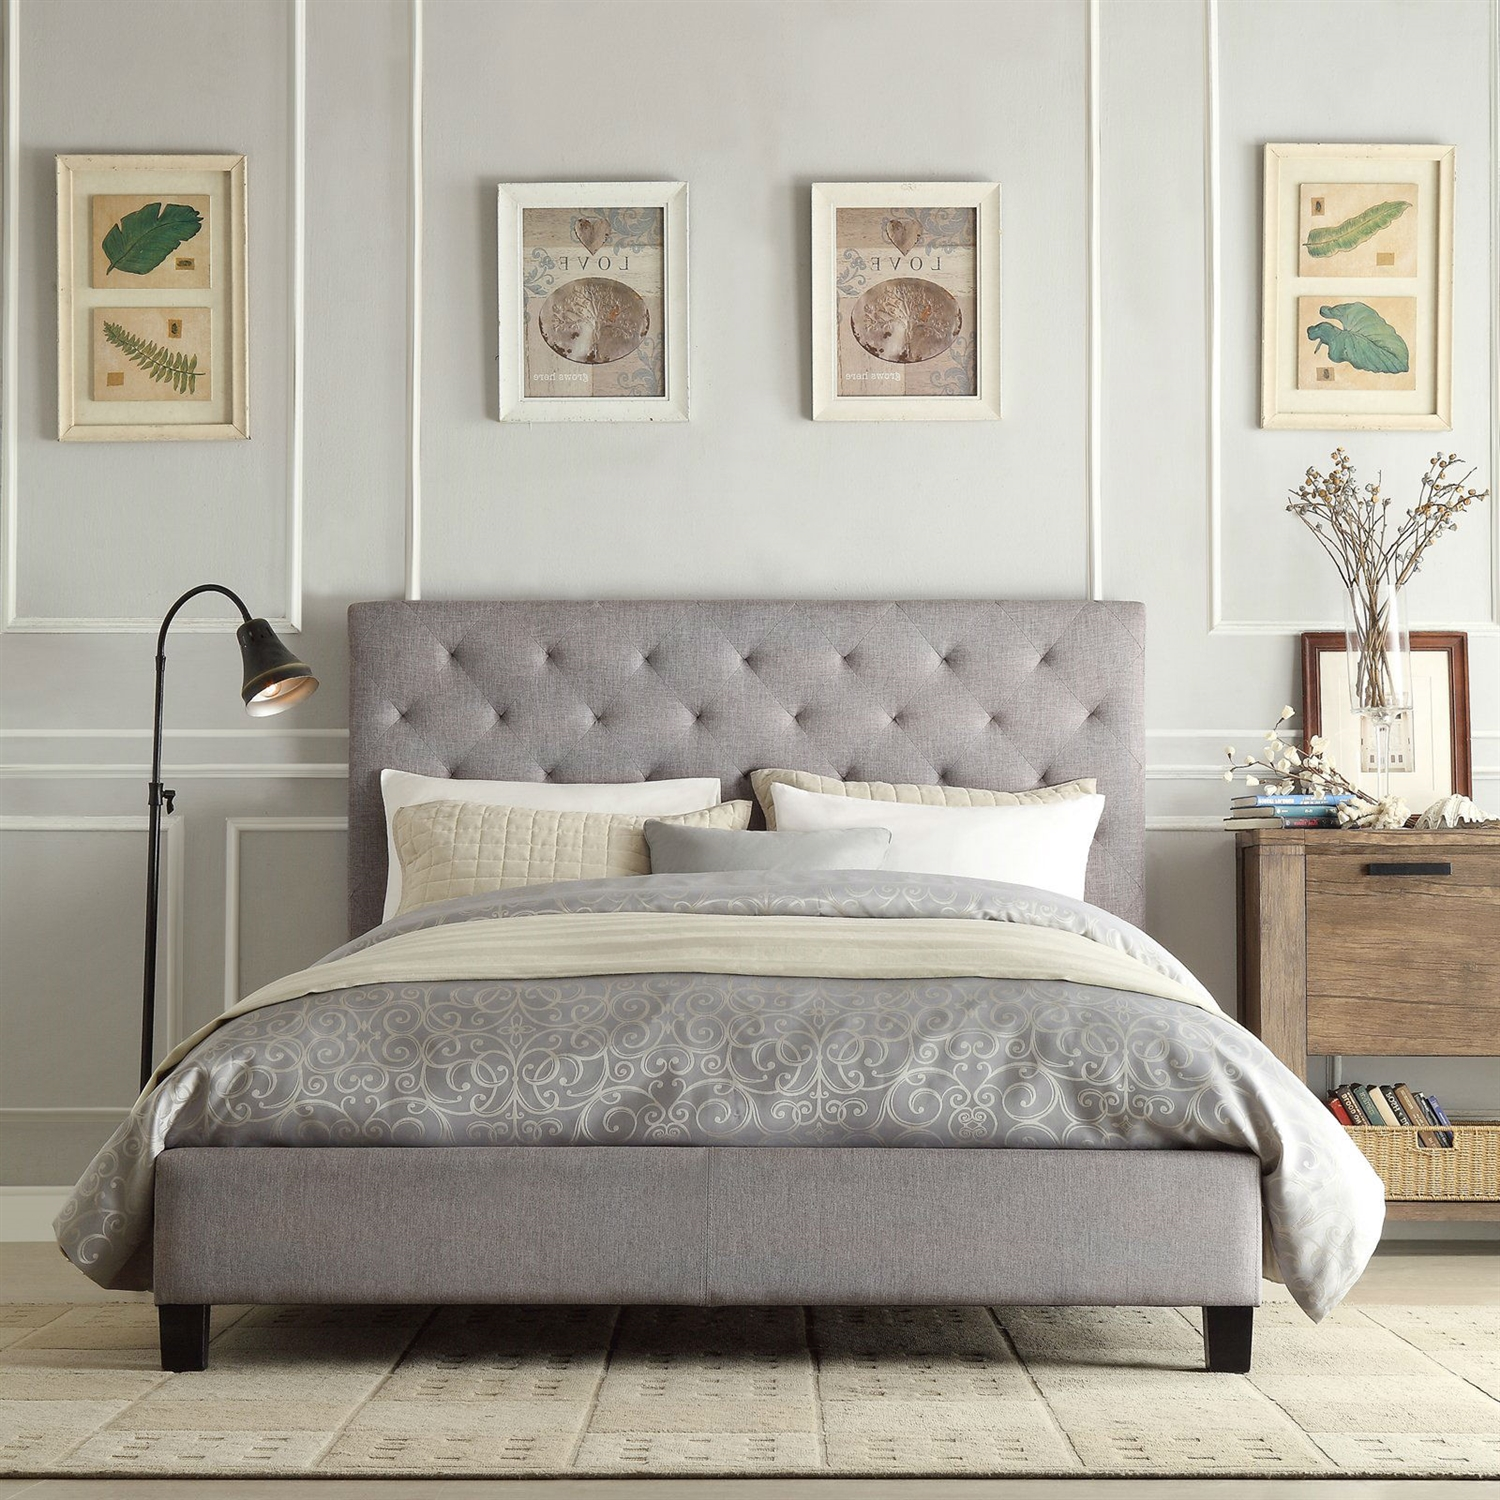 Tufted Queen Bed Queen Size Gray Linen Upholstered Platform Bed With Button